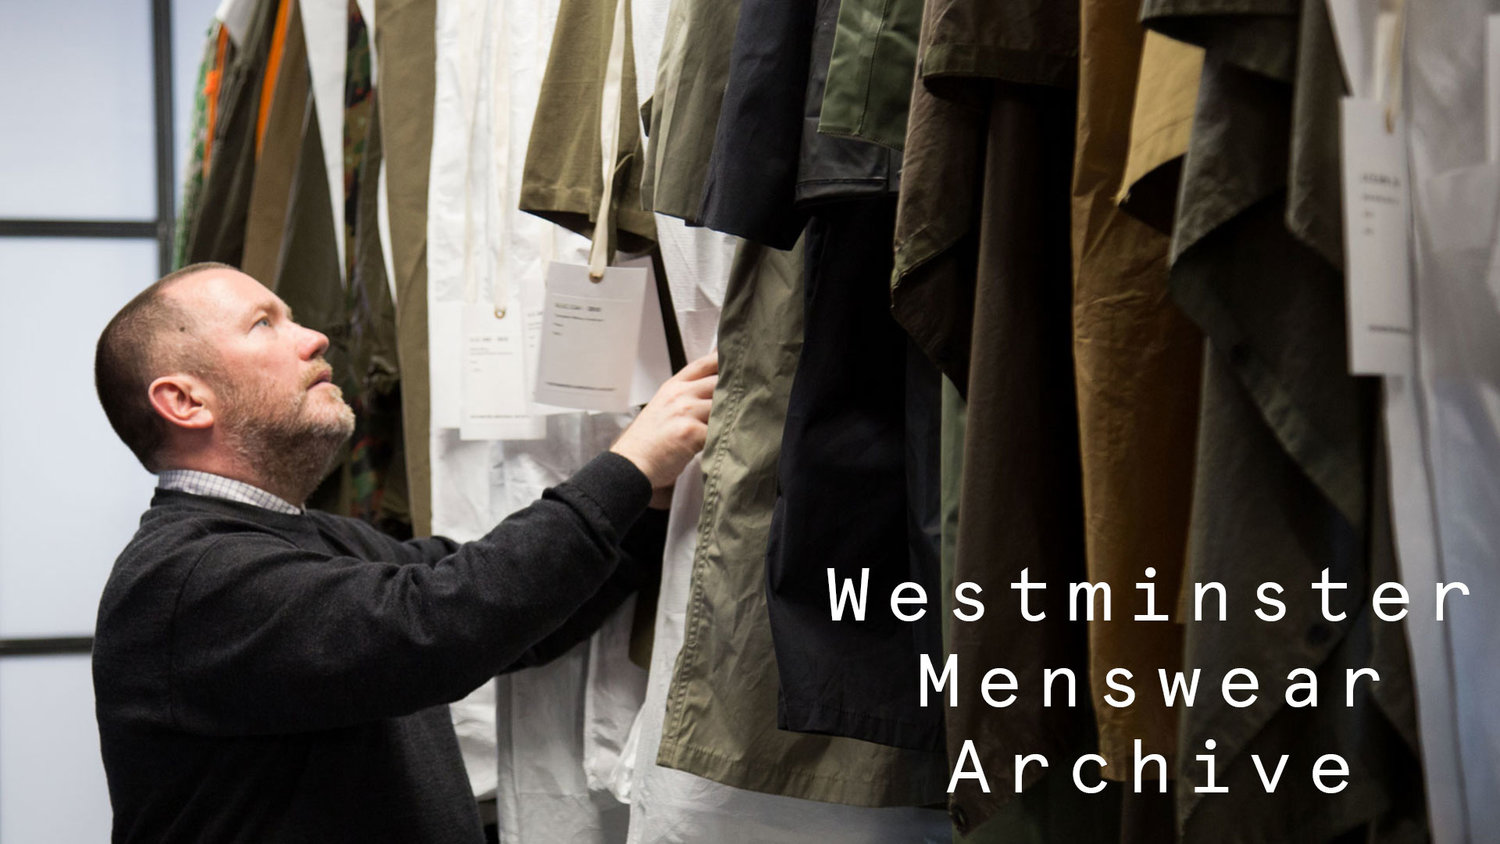 Westminster University Create World S First Public Menswear Archive Styleshoots Fashion Product Photography Equipment